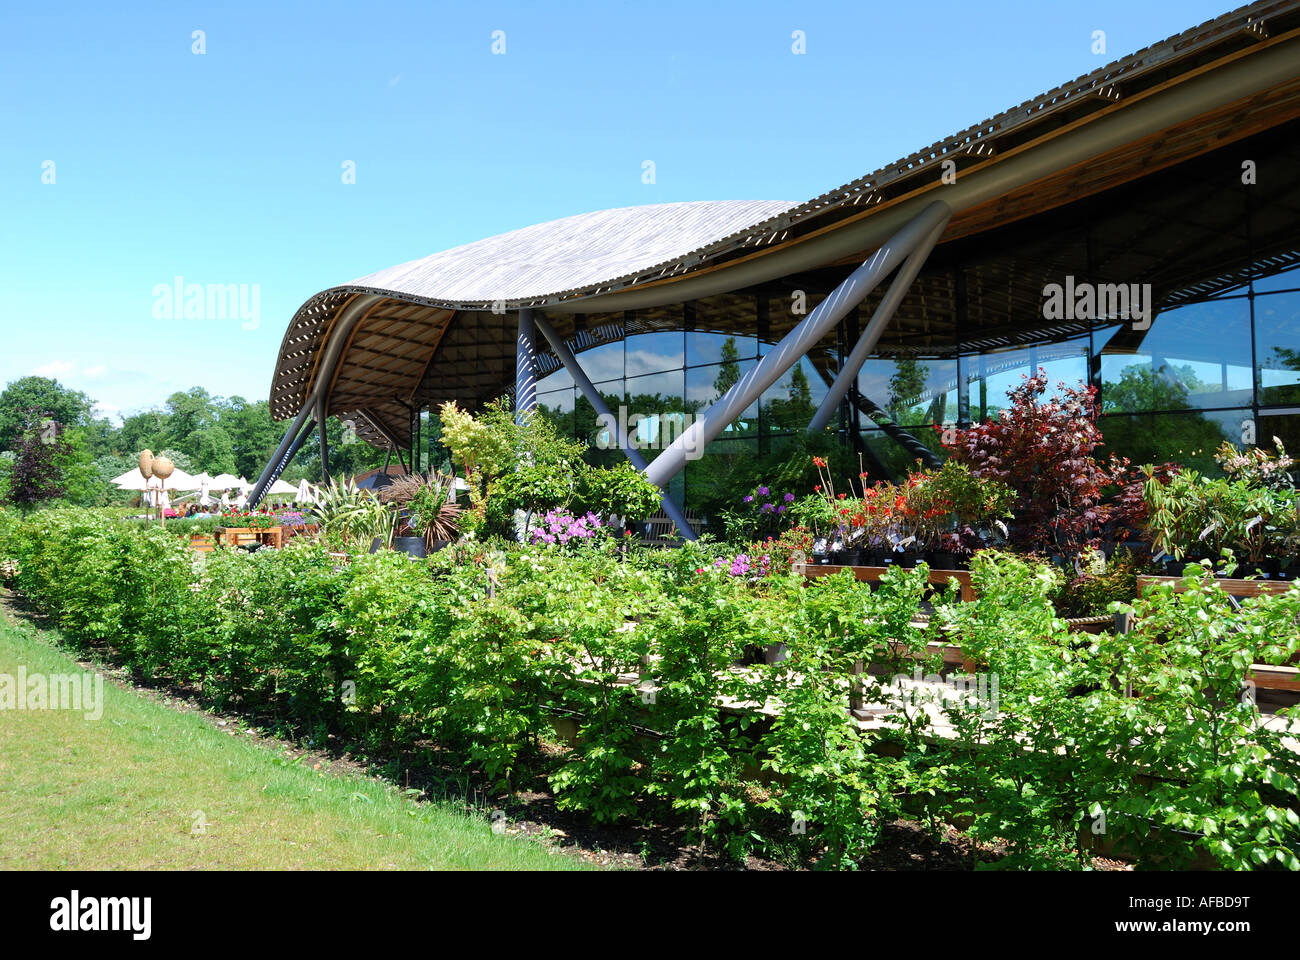 Garden Shop, Savill Building, Savill Garden, Windsor Great Park, Englefield Green, Surrey, England, United Kingdom - Stock Image